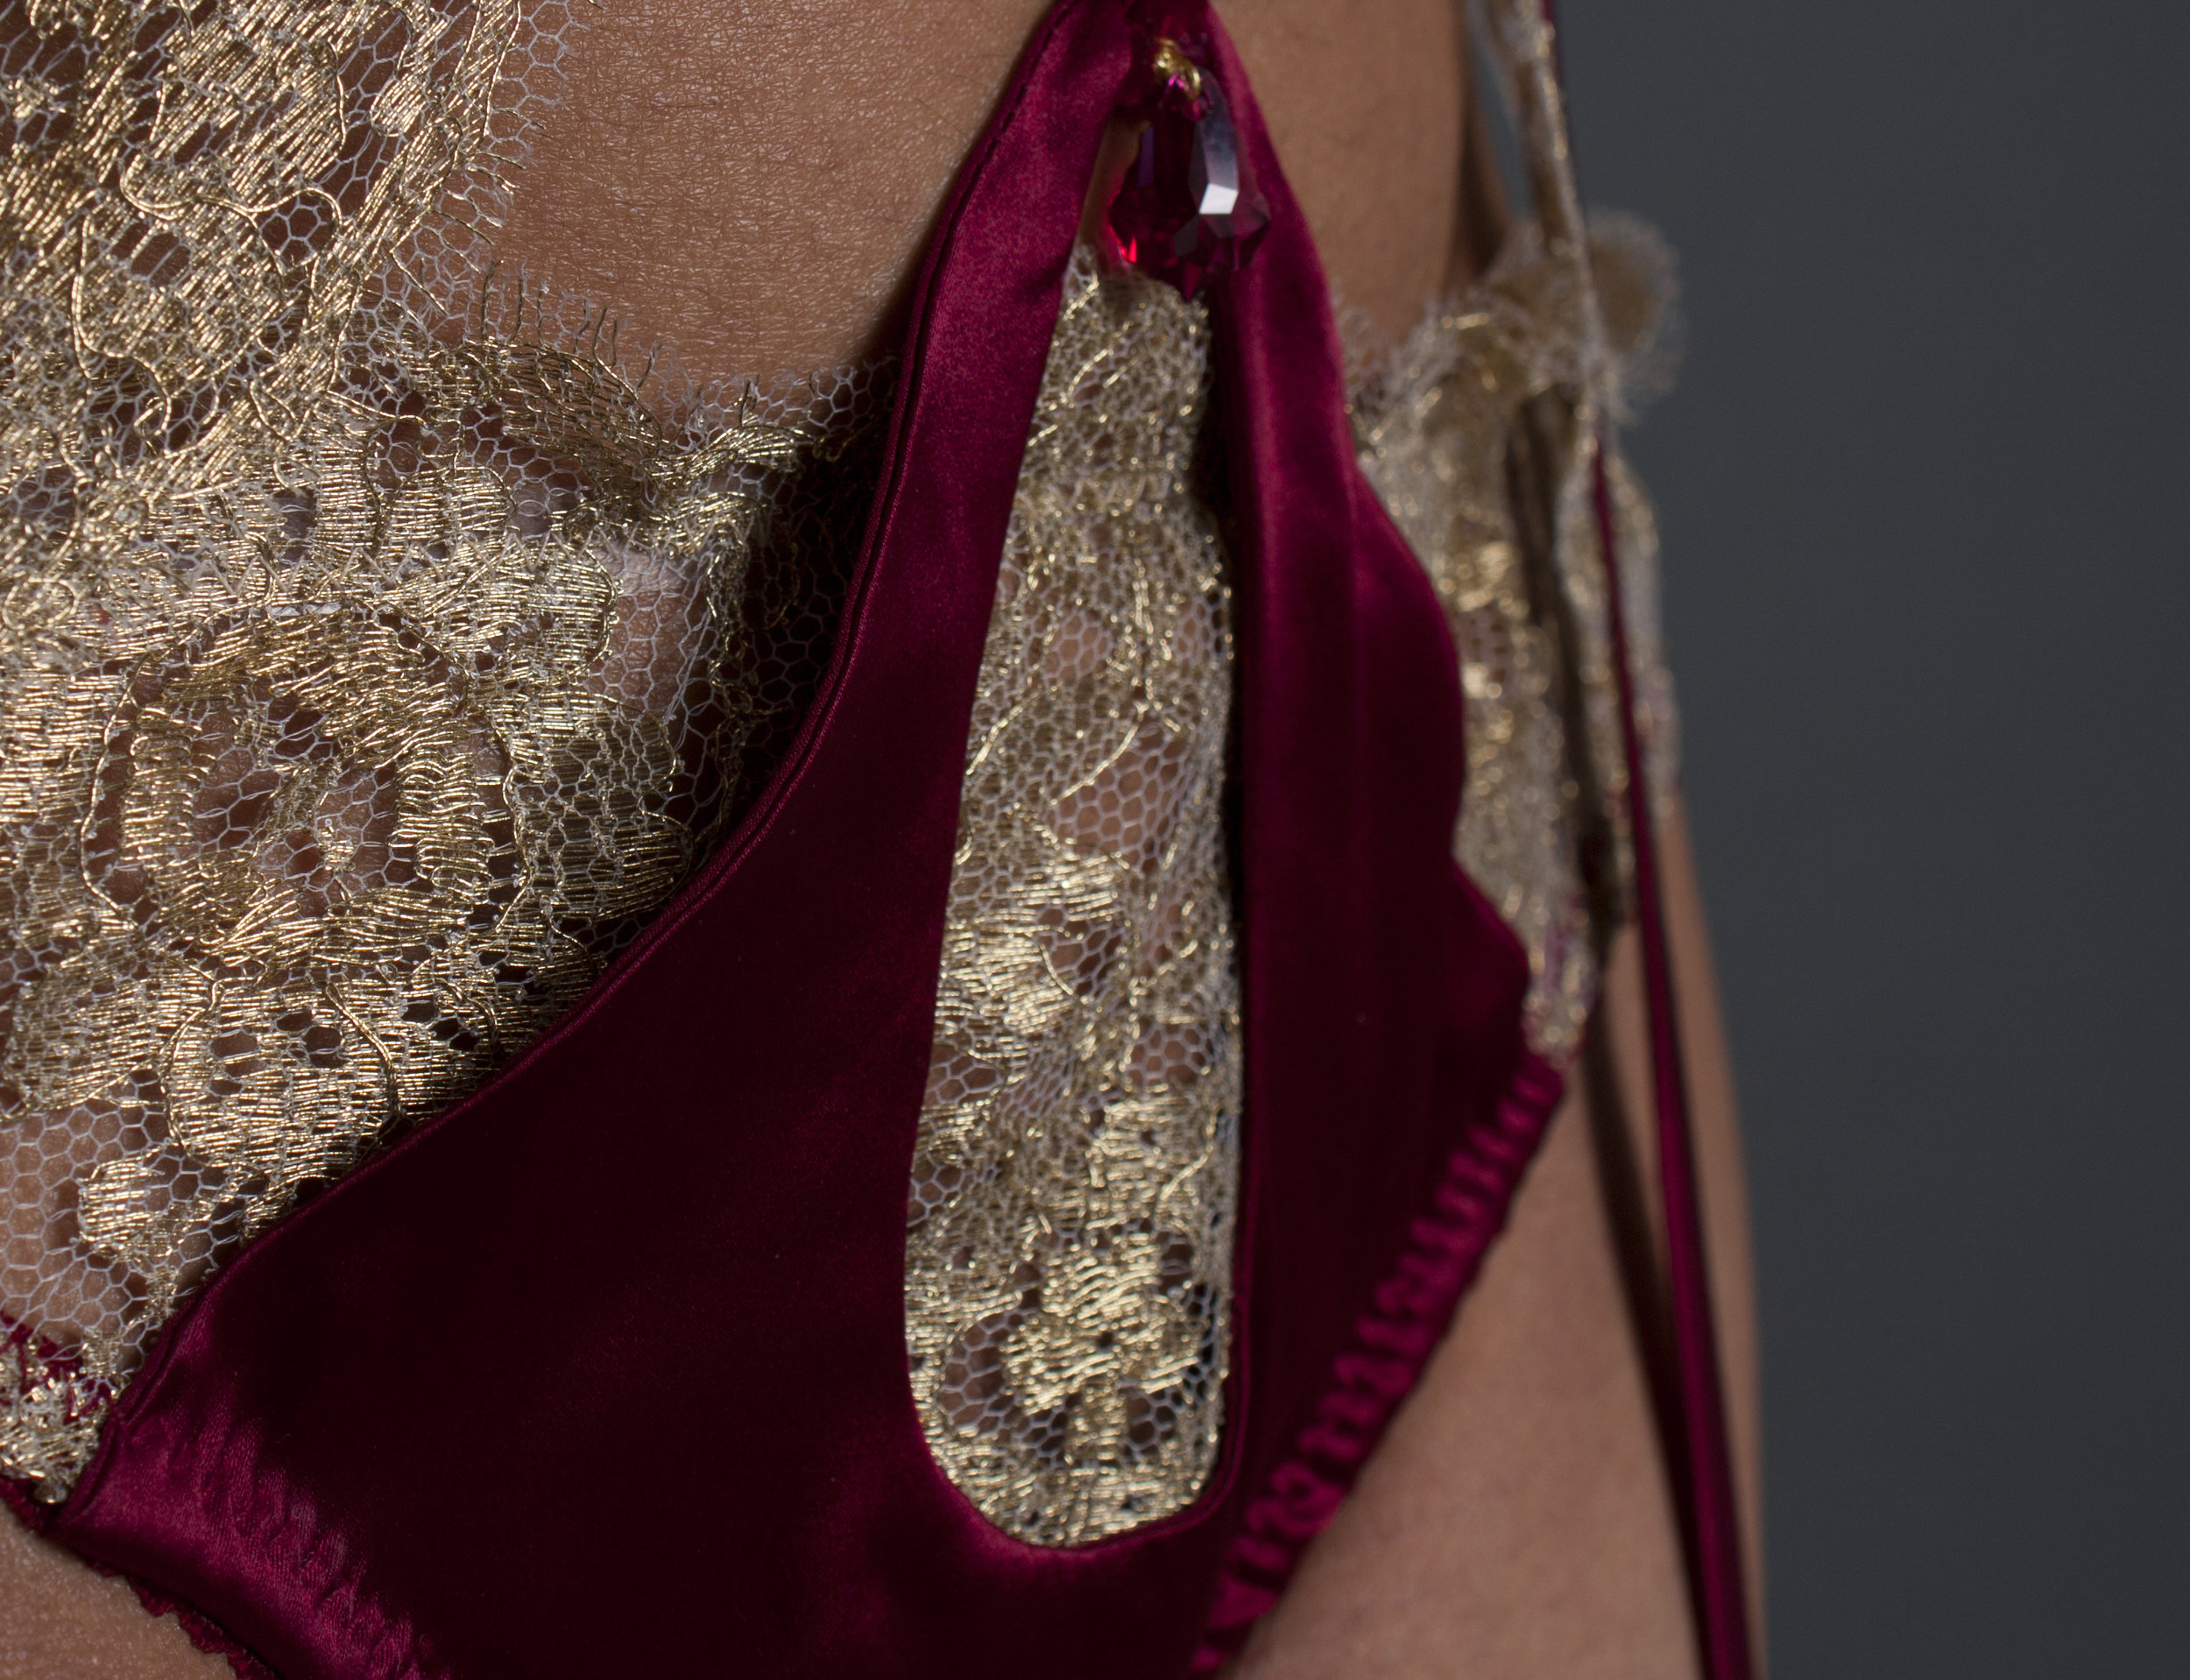 Silk, New York - Our silk has come all the way from the Garment District of Manhattan, New York City. At 94% silk, this is the purest quality used for contour lingerie.